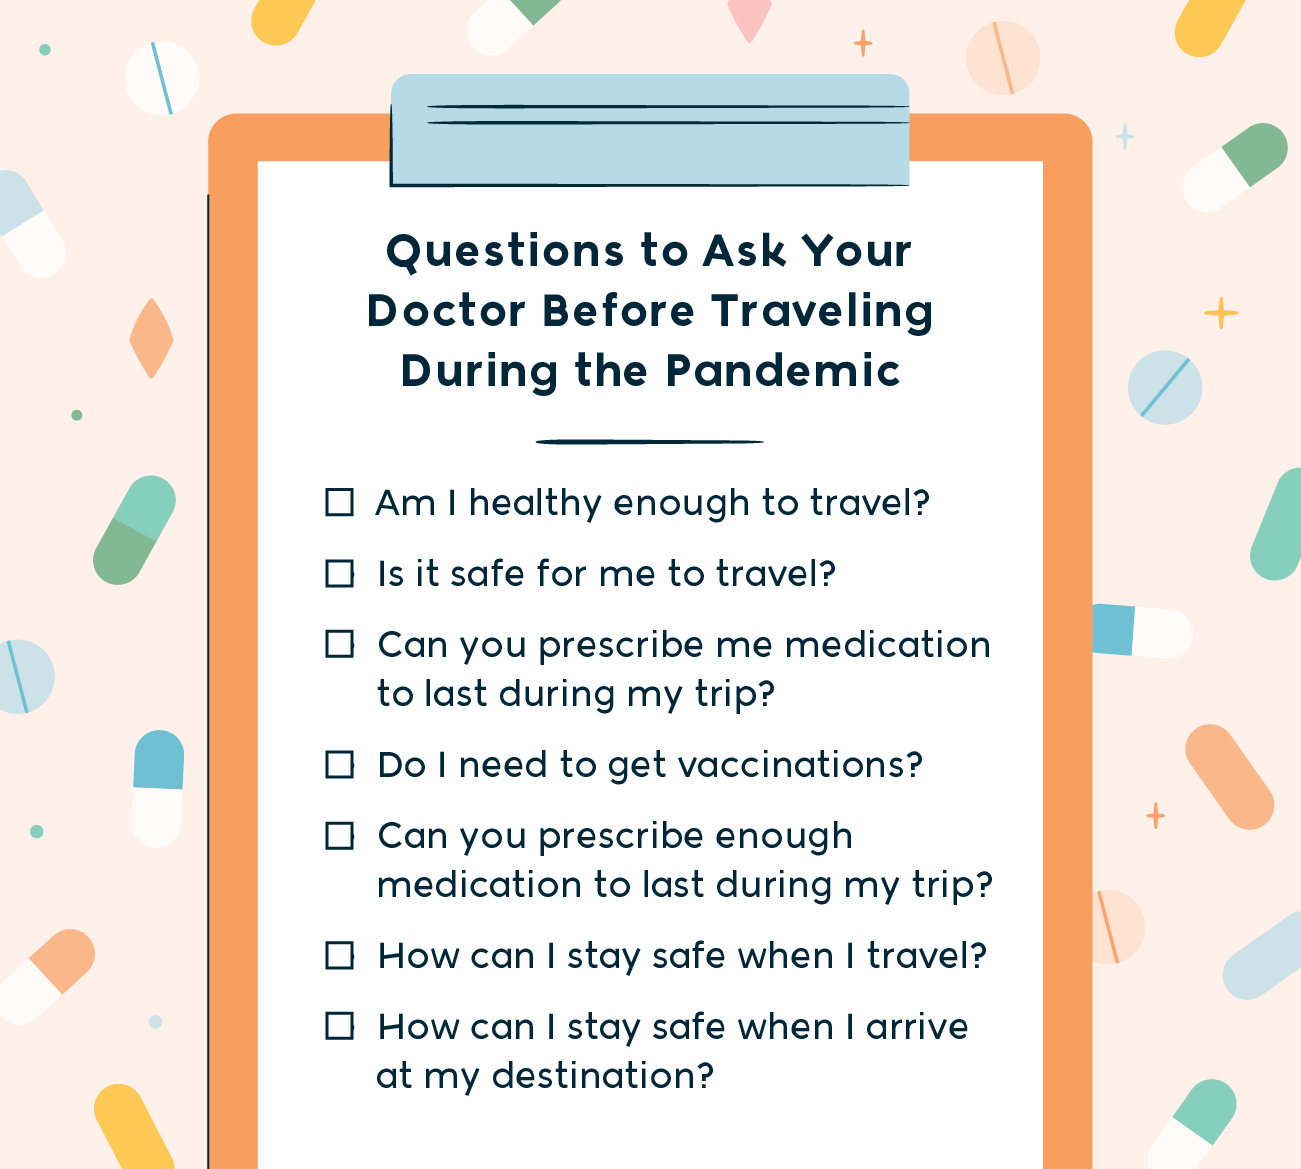 questions to ask your doctor before traveling during the pandemic